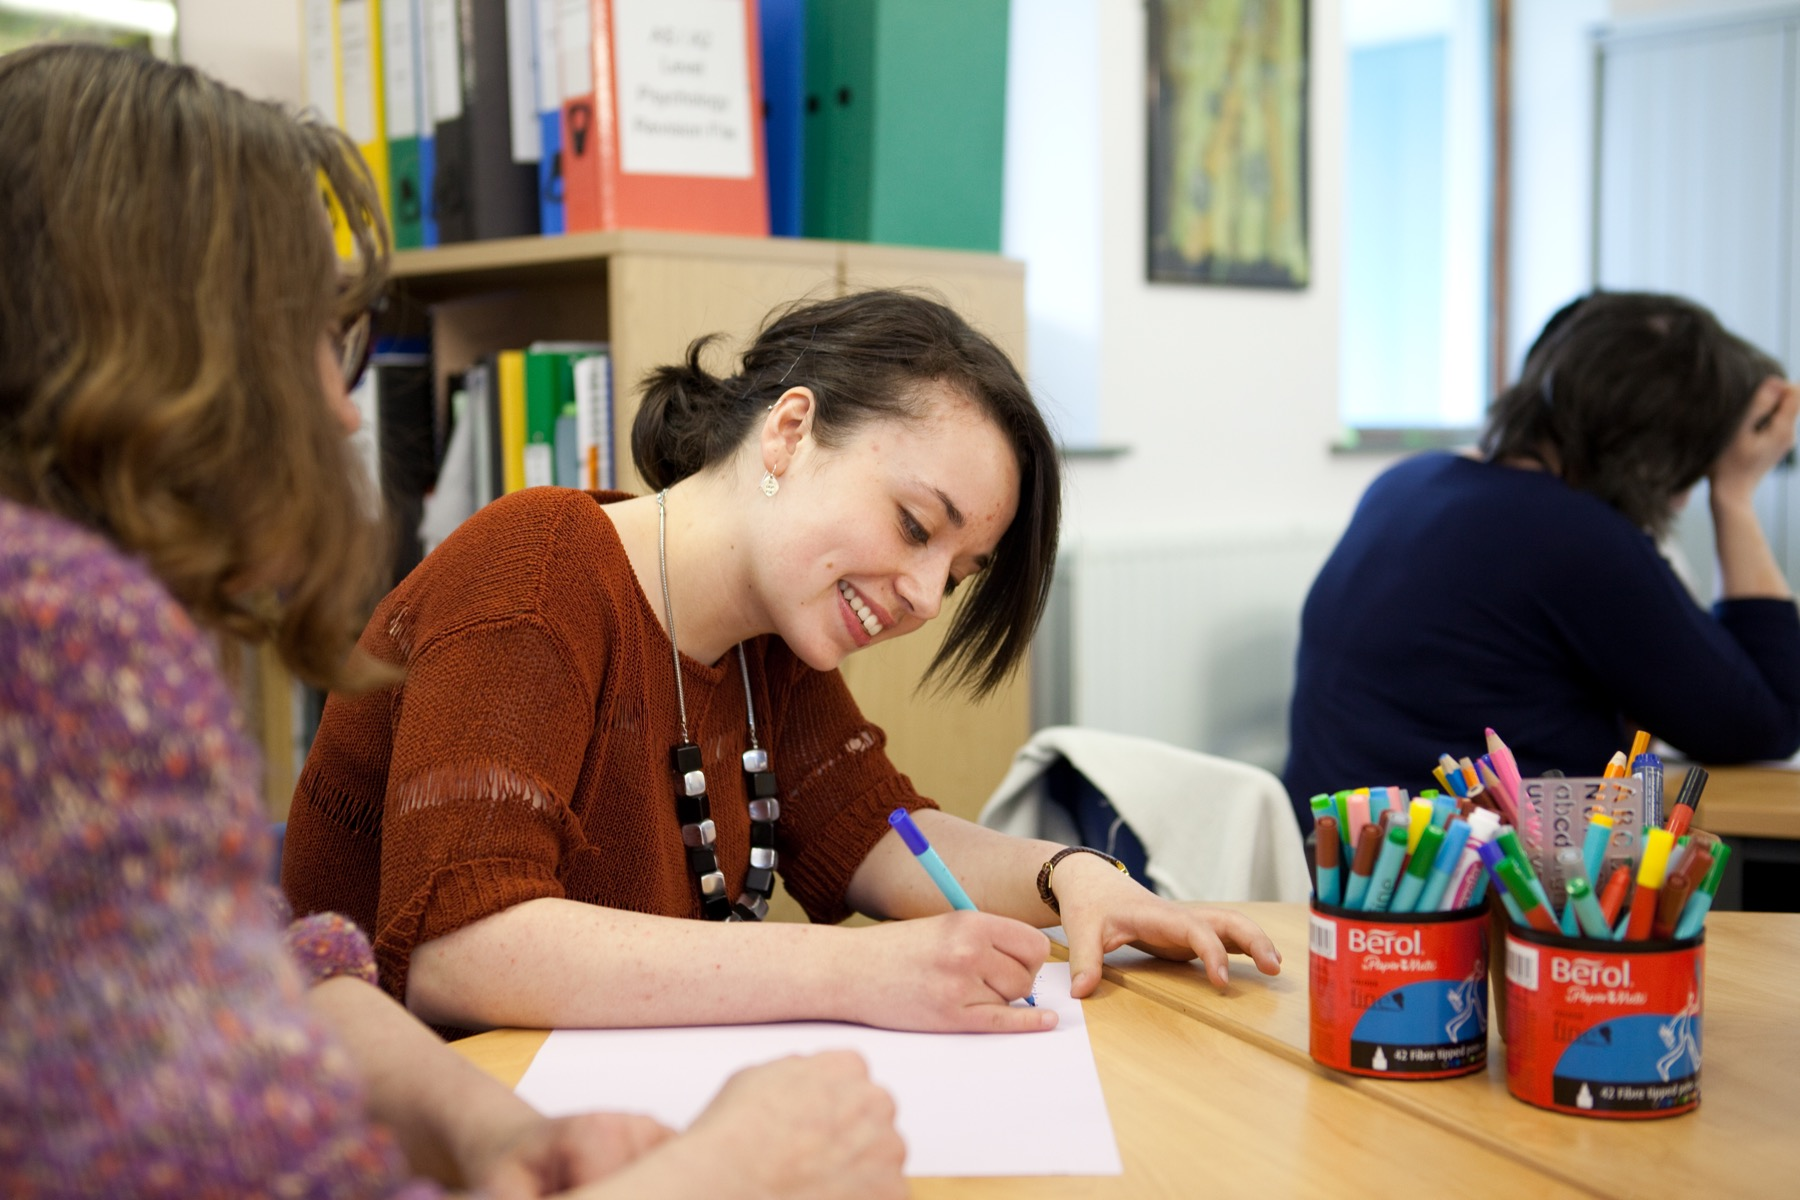 Should I take 'English A Level' or 'English Literature A Level' - what is the difference?